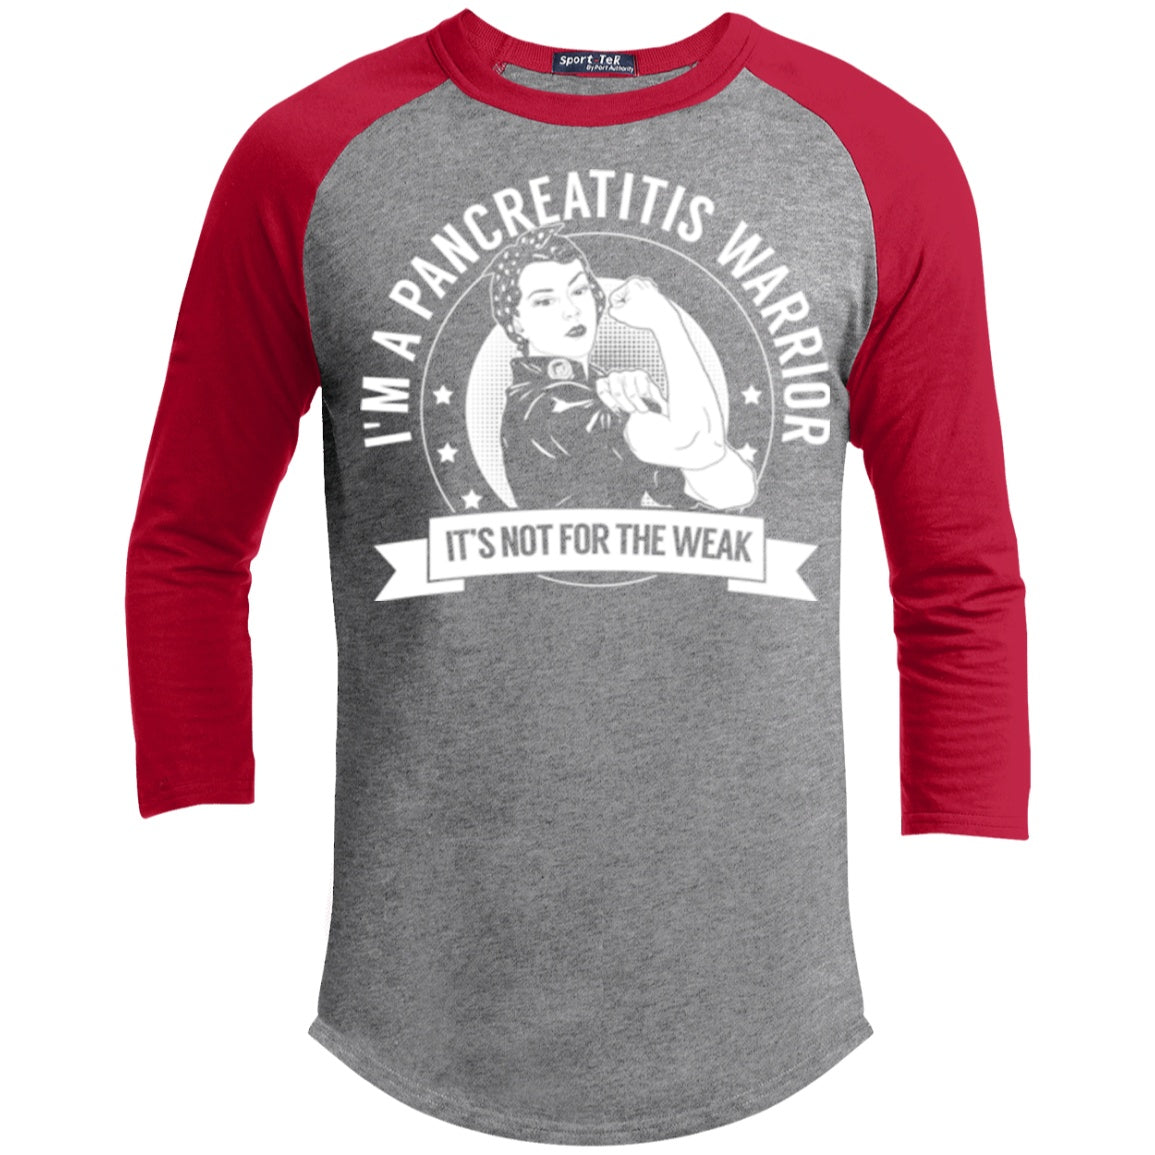 Pancreatitis Warrior Not For The Weak Baseball Shirt - The Unchargeables